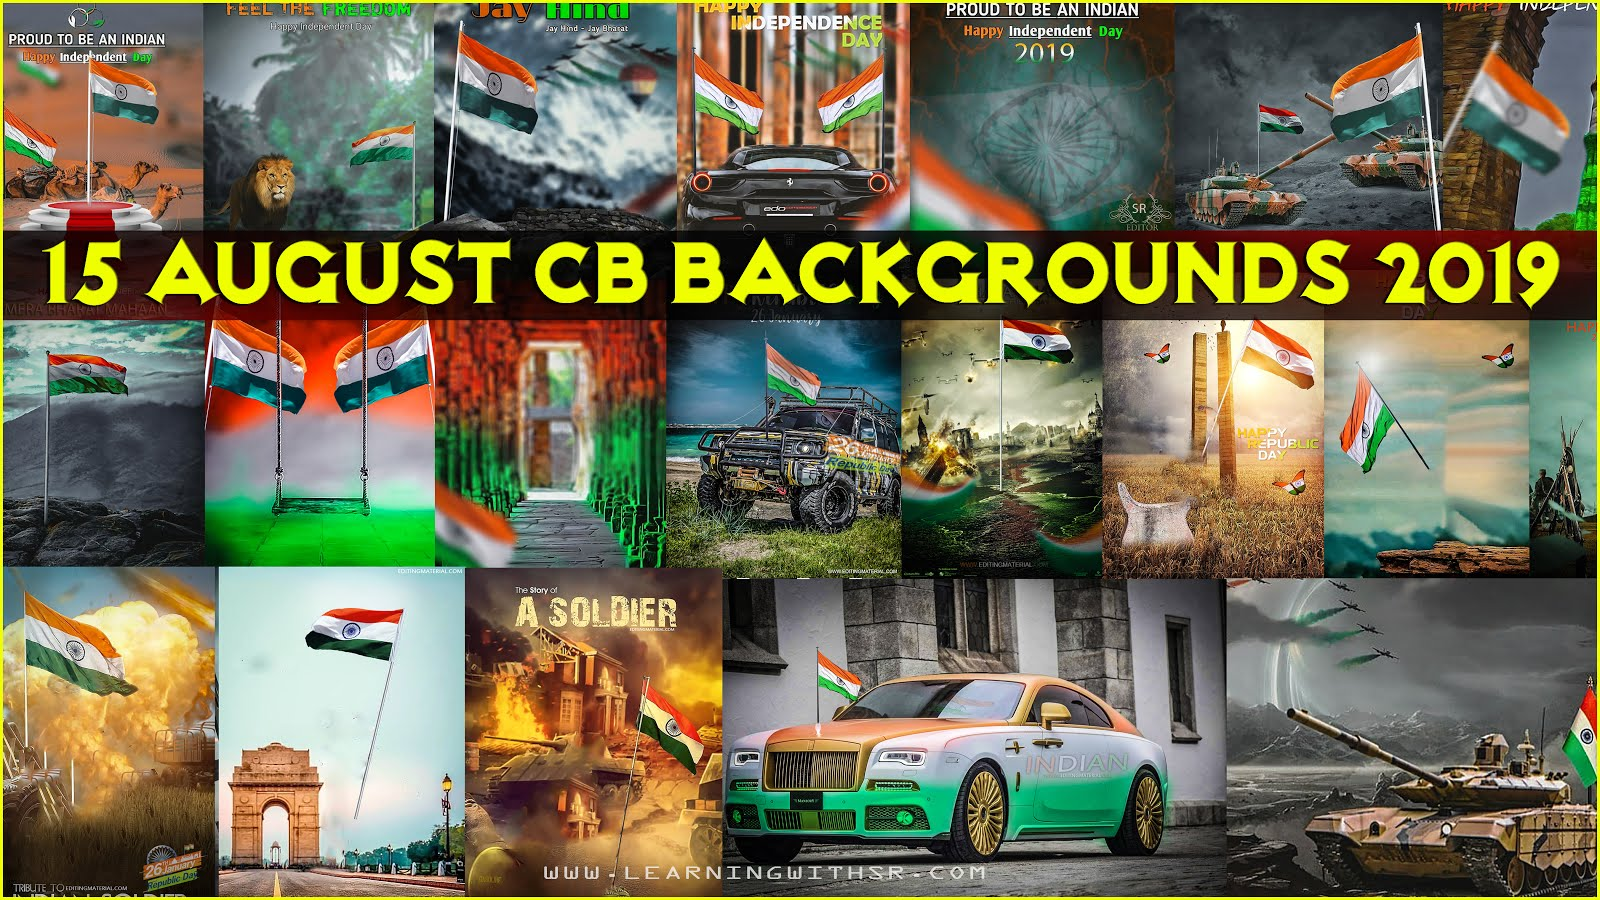 15 August 2019 cb background download, Independence day